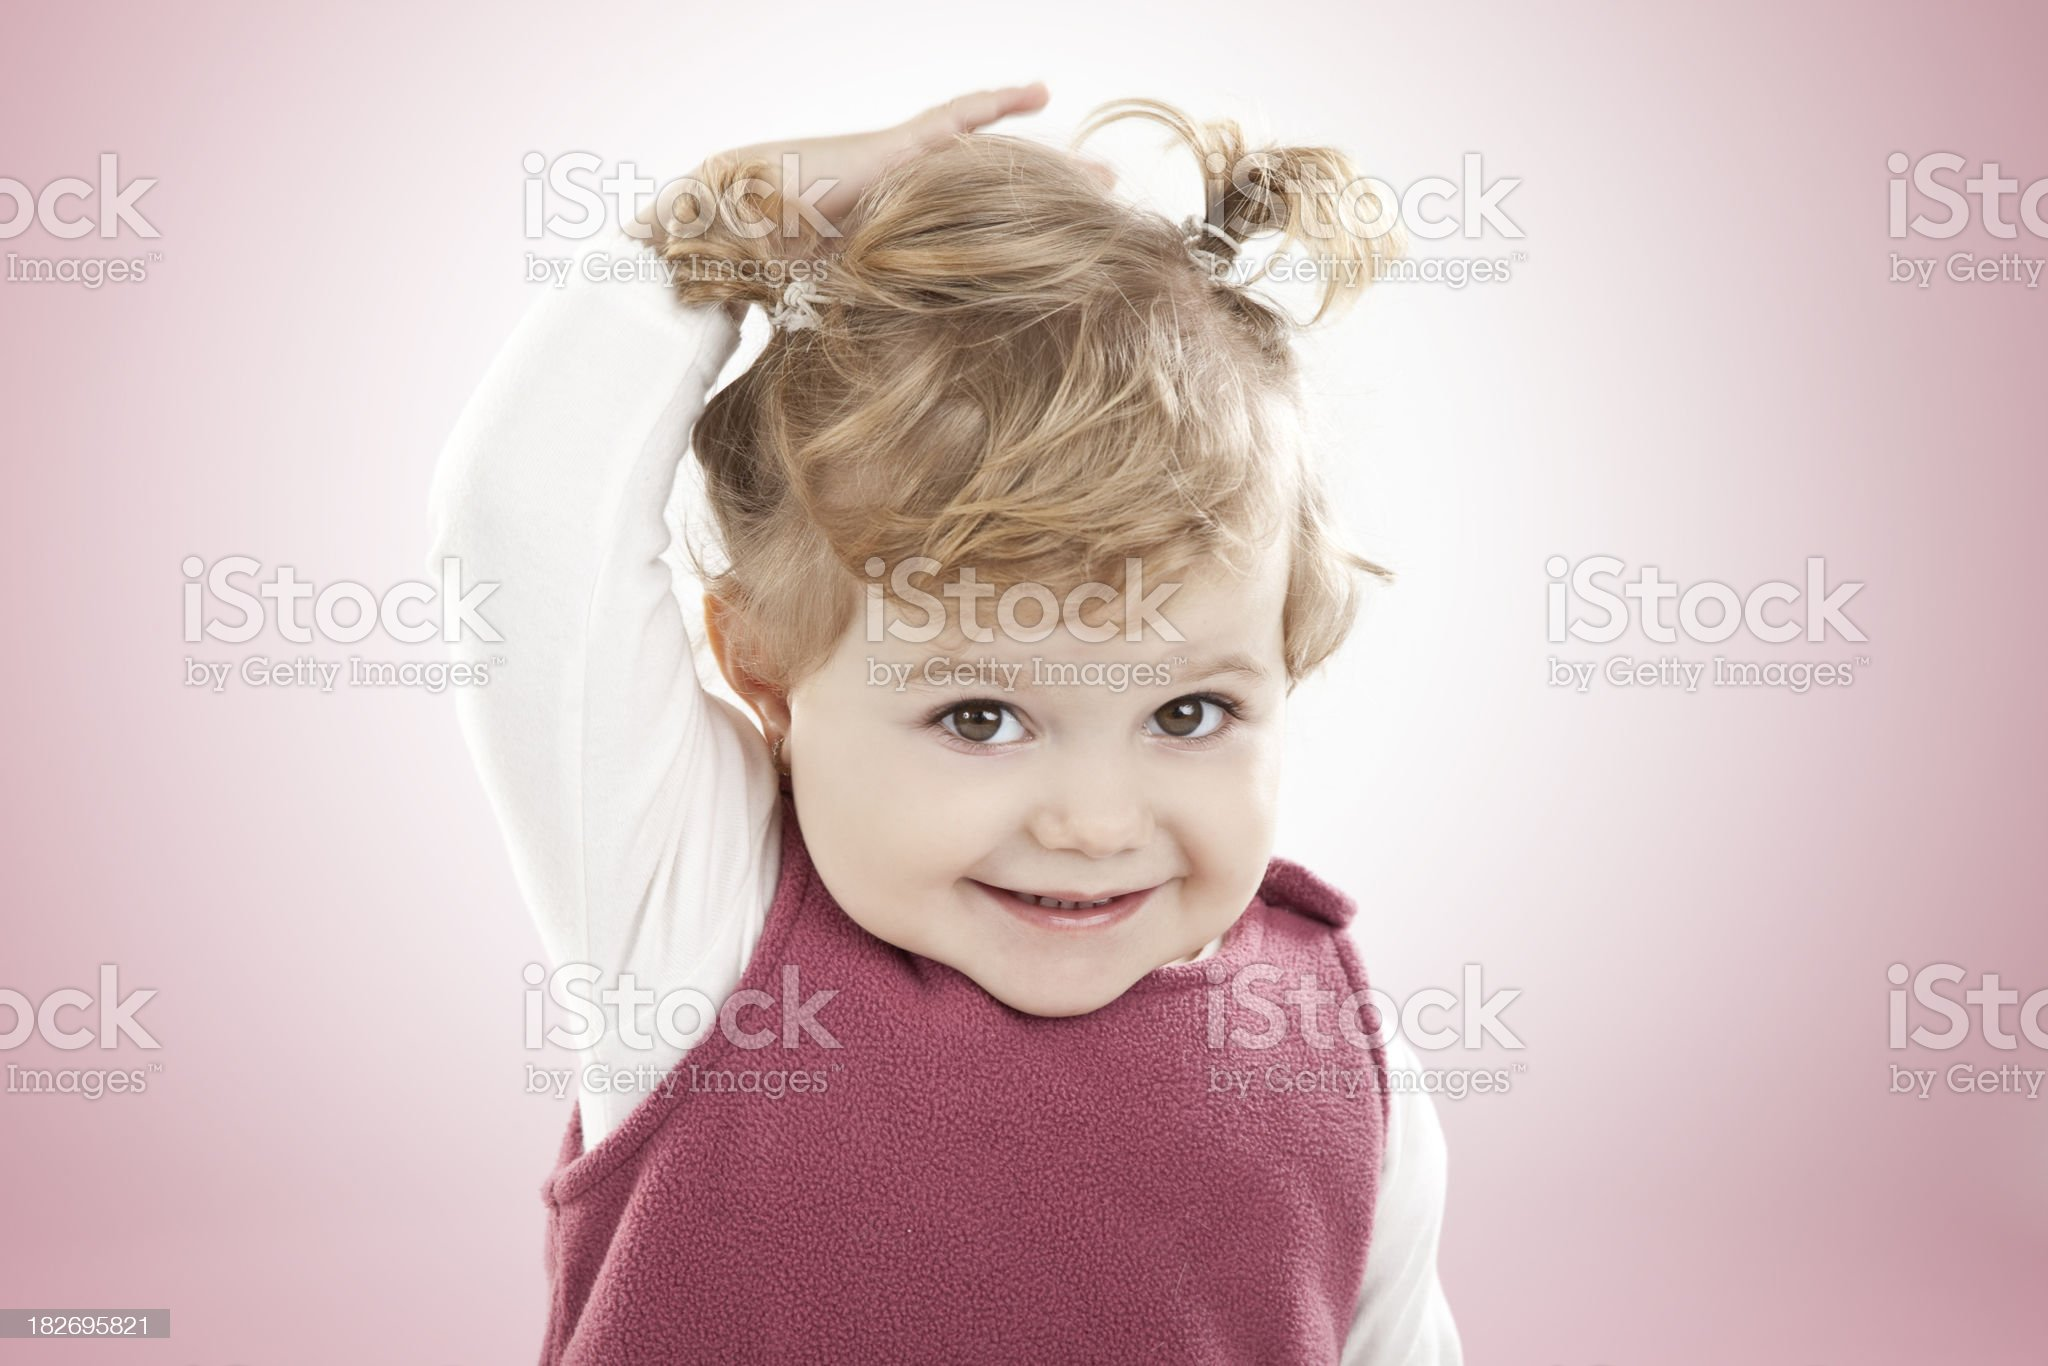 Cute girl with pigtails royalty-free stock photo